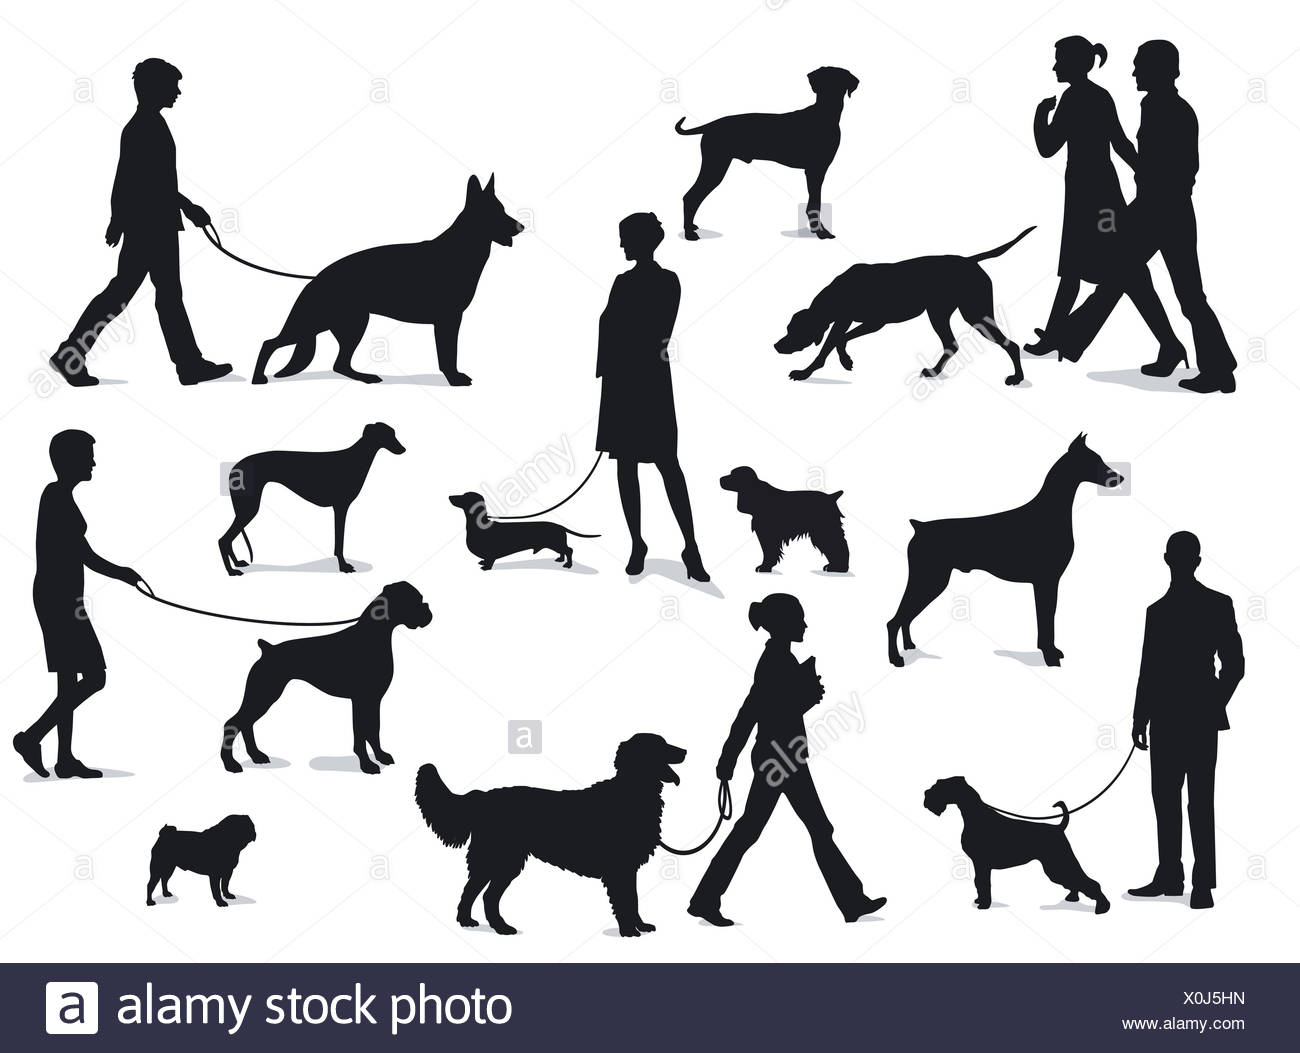 Walking with dogs - Stock Image